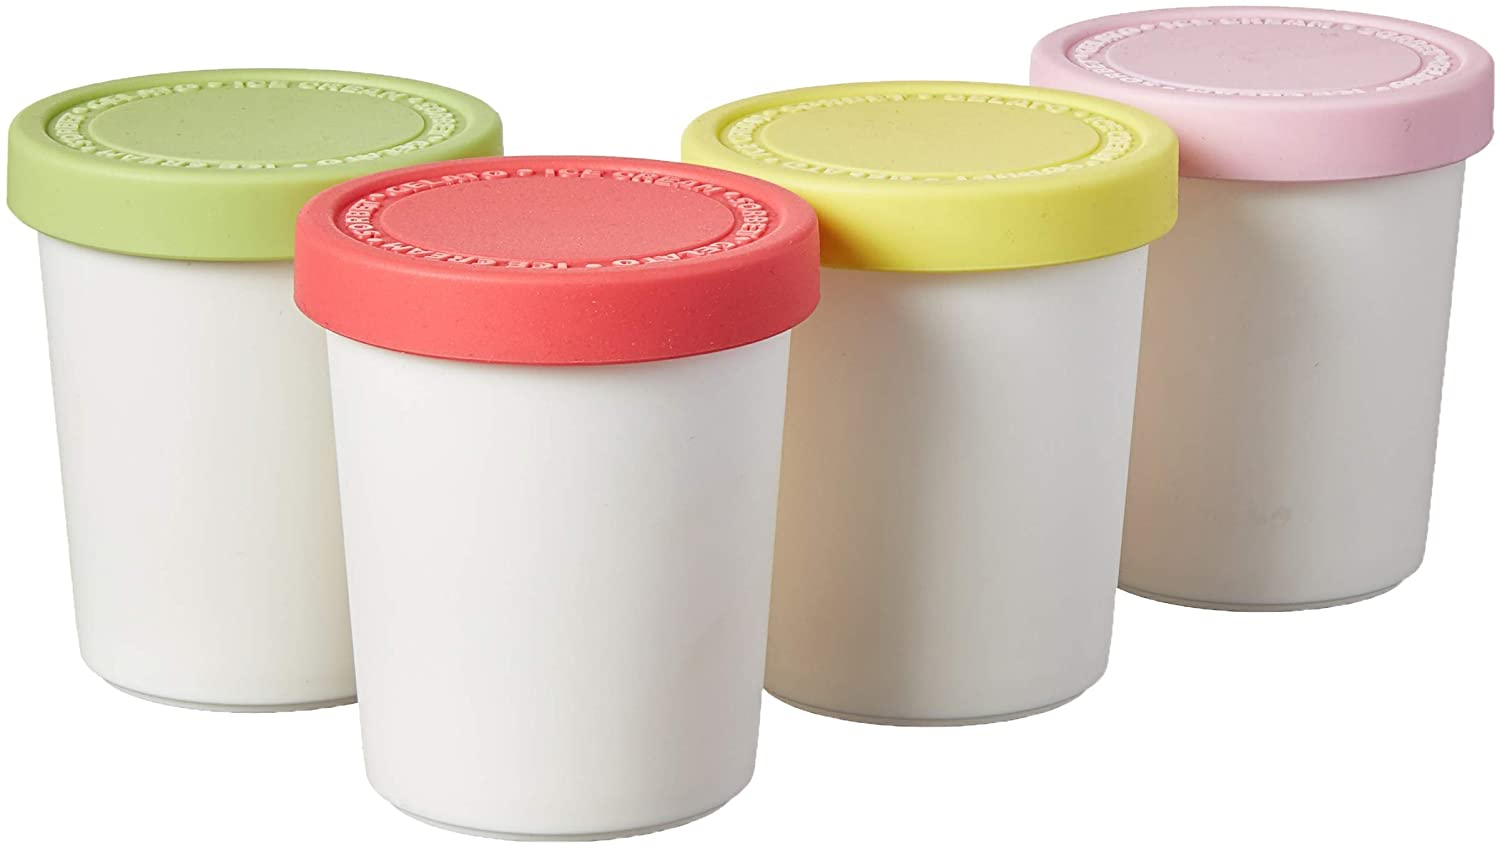 Our Top Four Ice Cream Containers